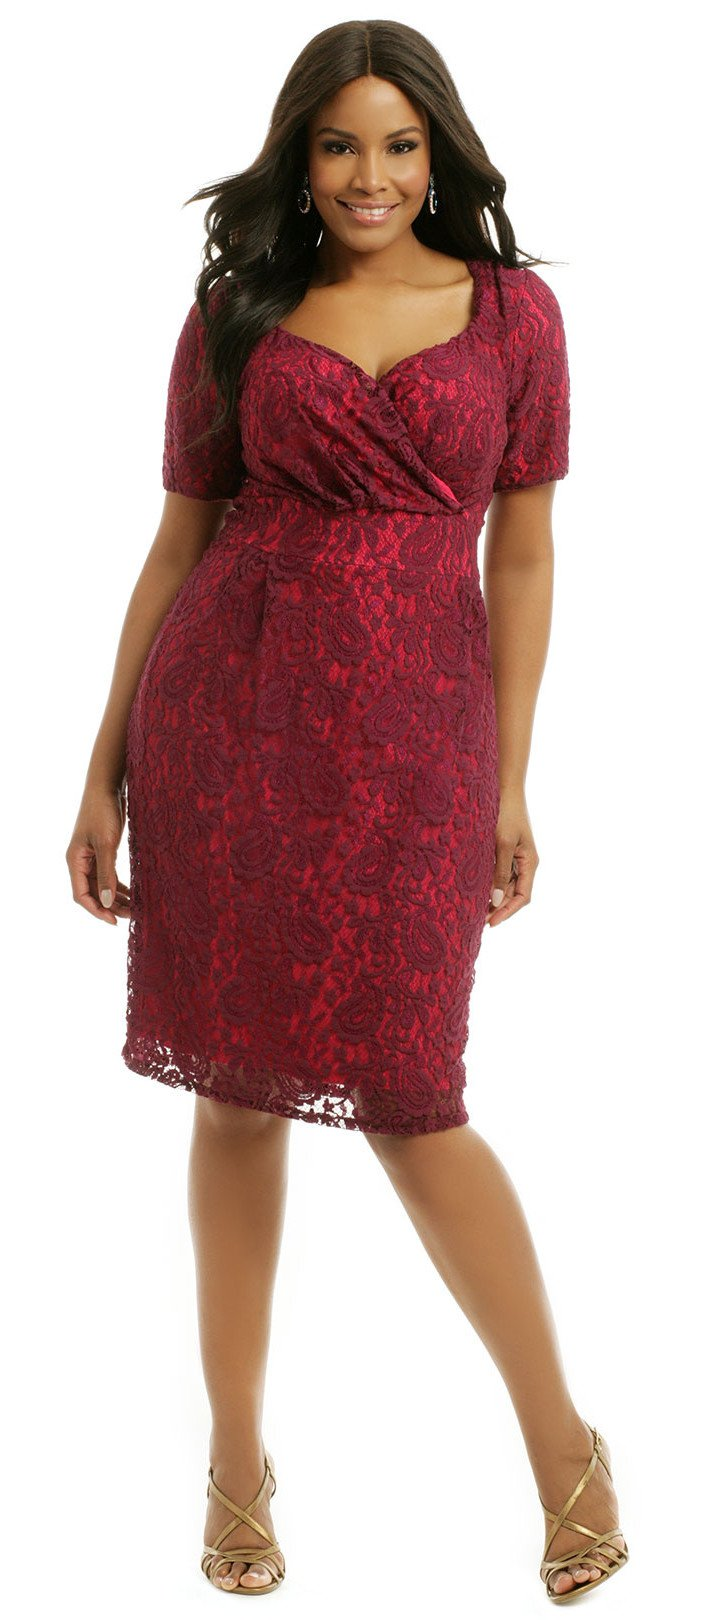 Igigi Berry Melina Dress